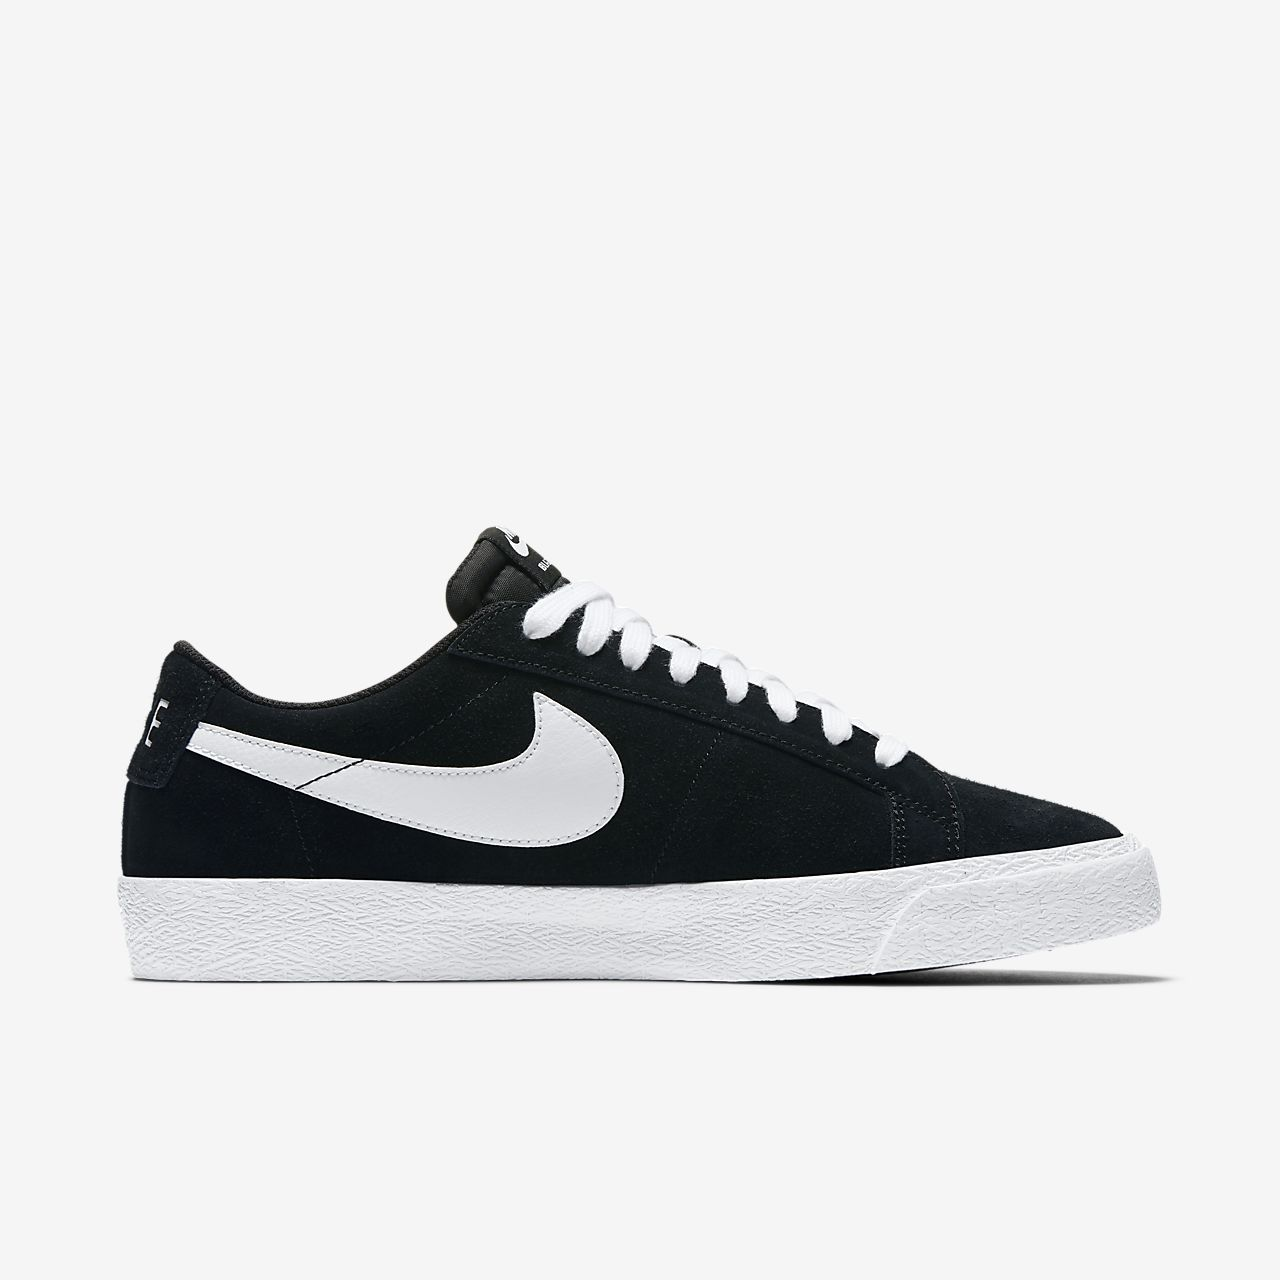 d96a986fac08c0 Nike SB Blazer Zoom Low Men s Skateboarding Shoe. Nike.com